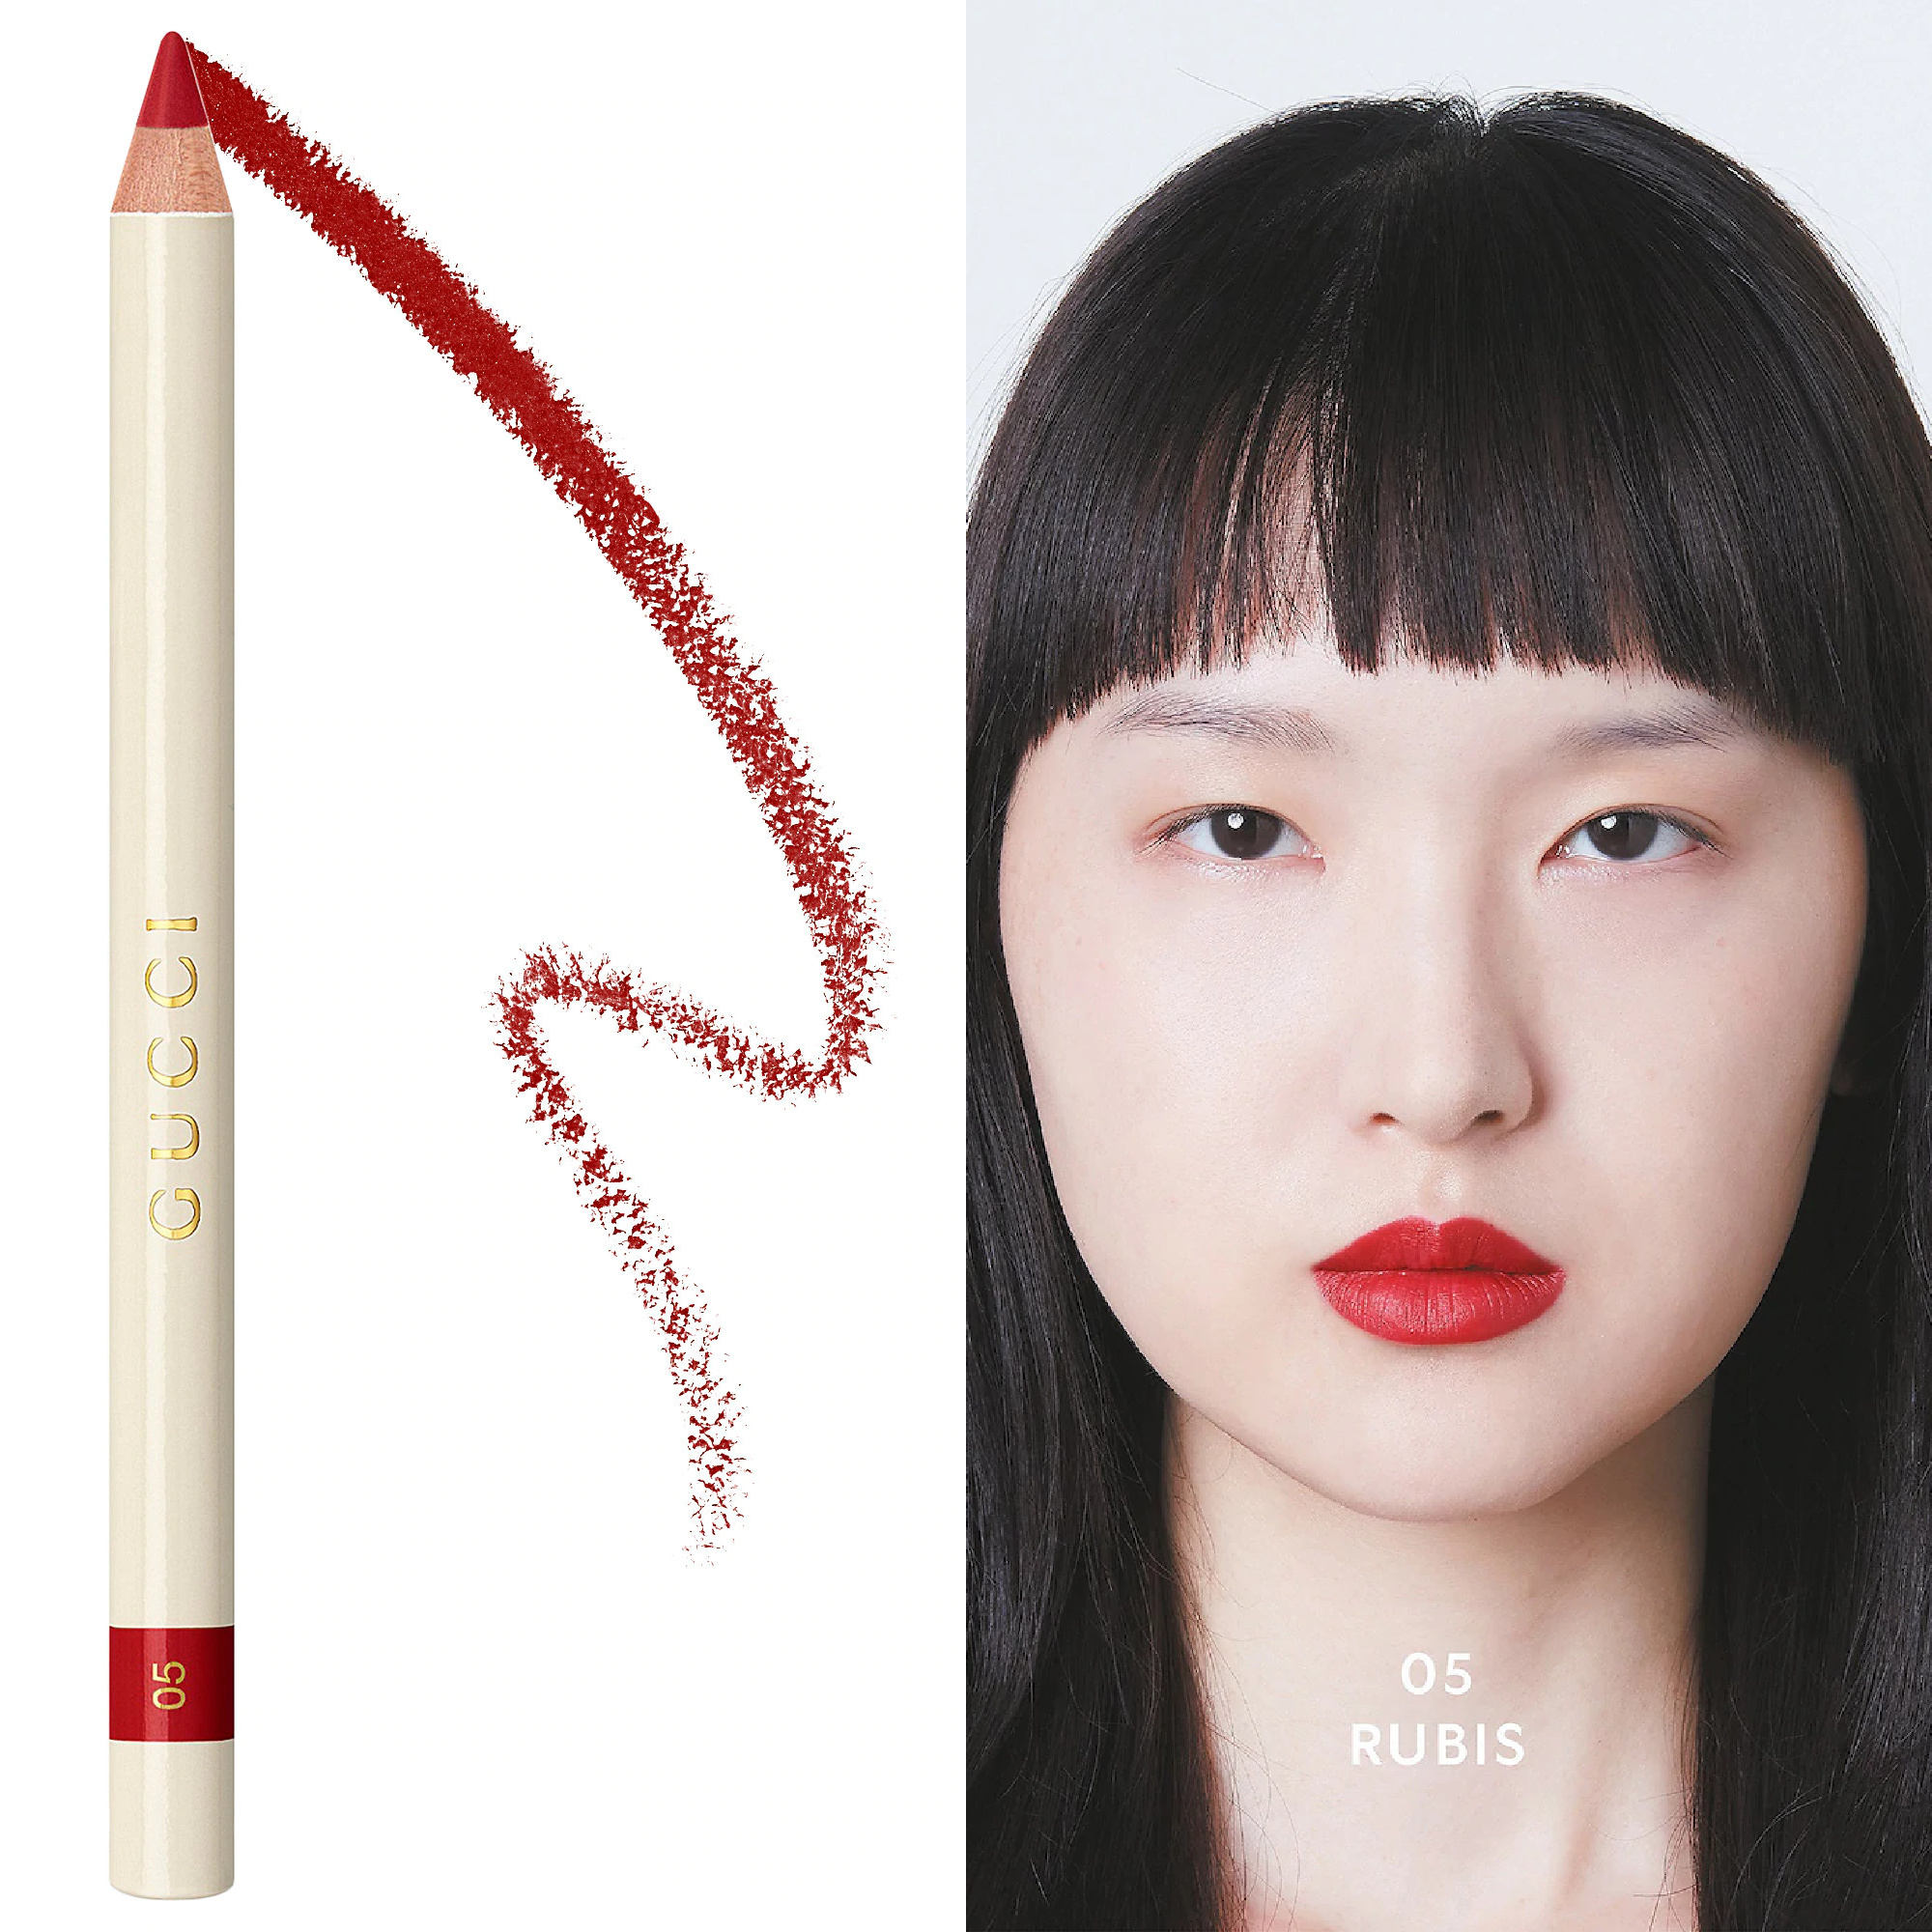 Gucci Crayon Contour Des Lévres Lip Liner Collection